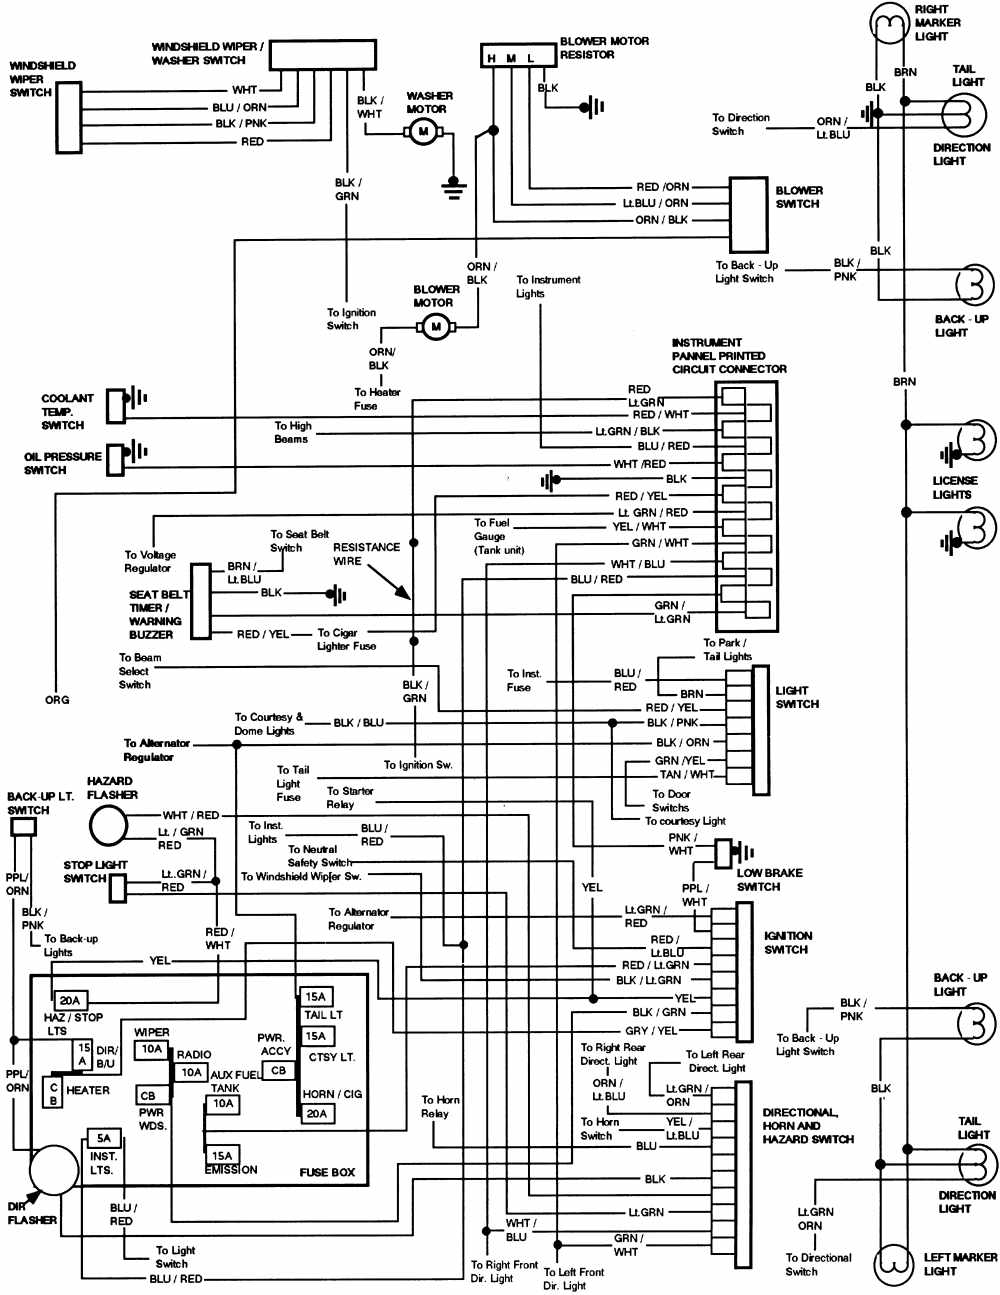 Ford Bronco Instrument Panel Wiring Diagram